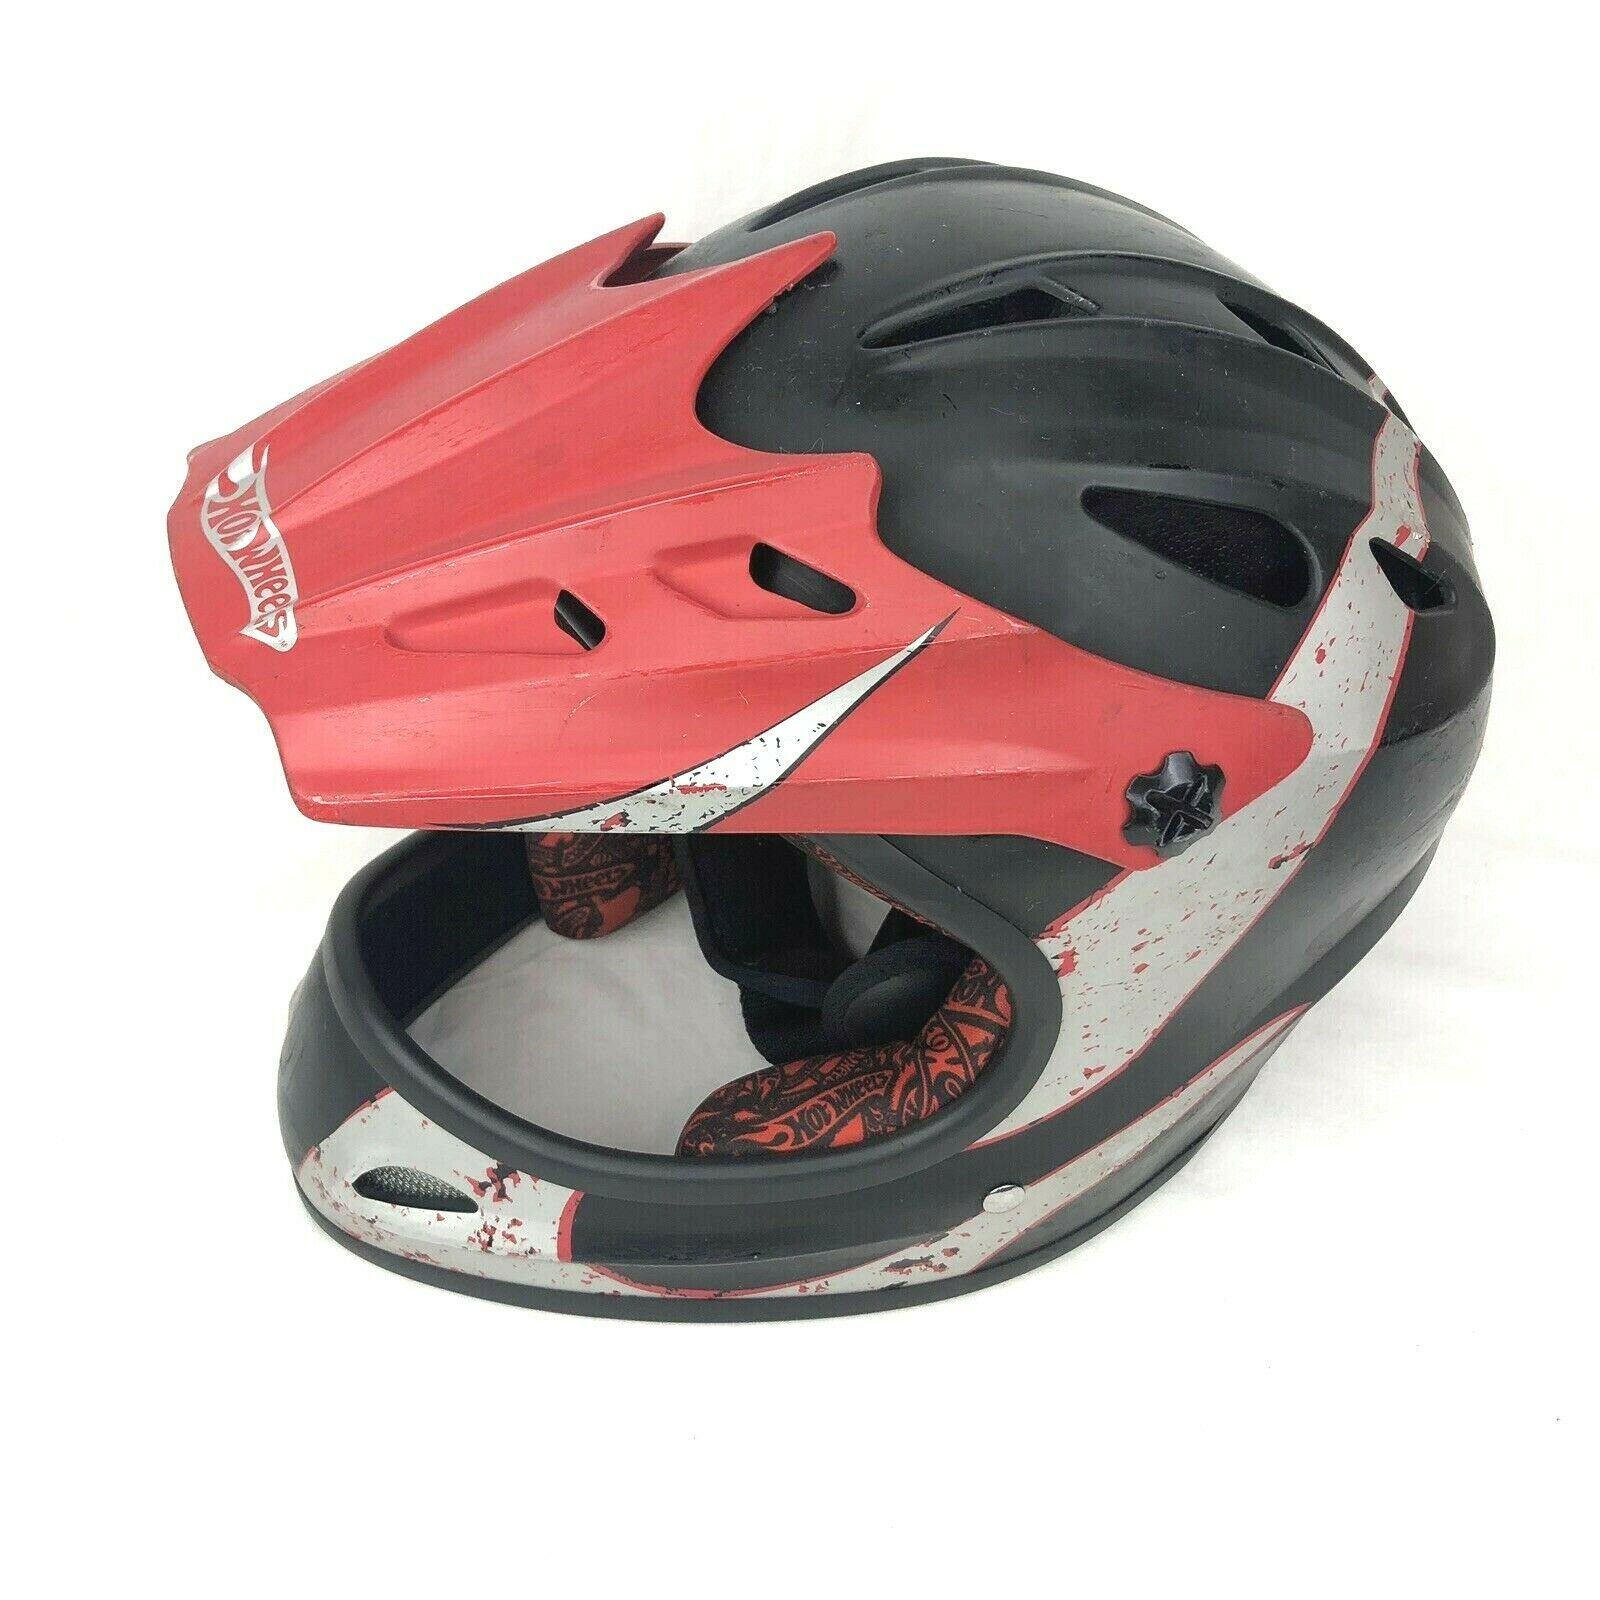 Bell Frenzy Bicycle Youth Helmet for Age 8-14 UPSC Safety Standards